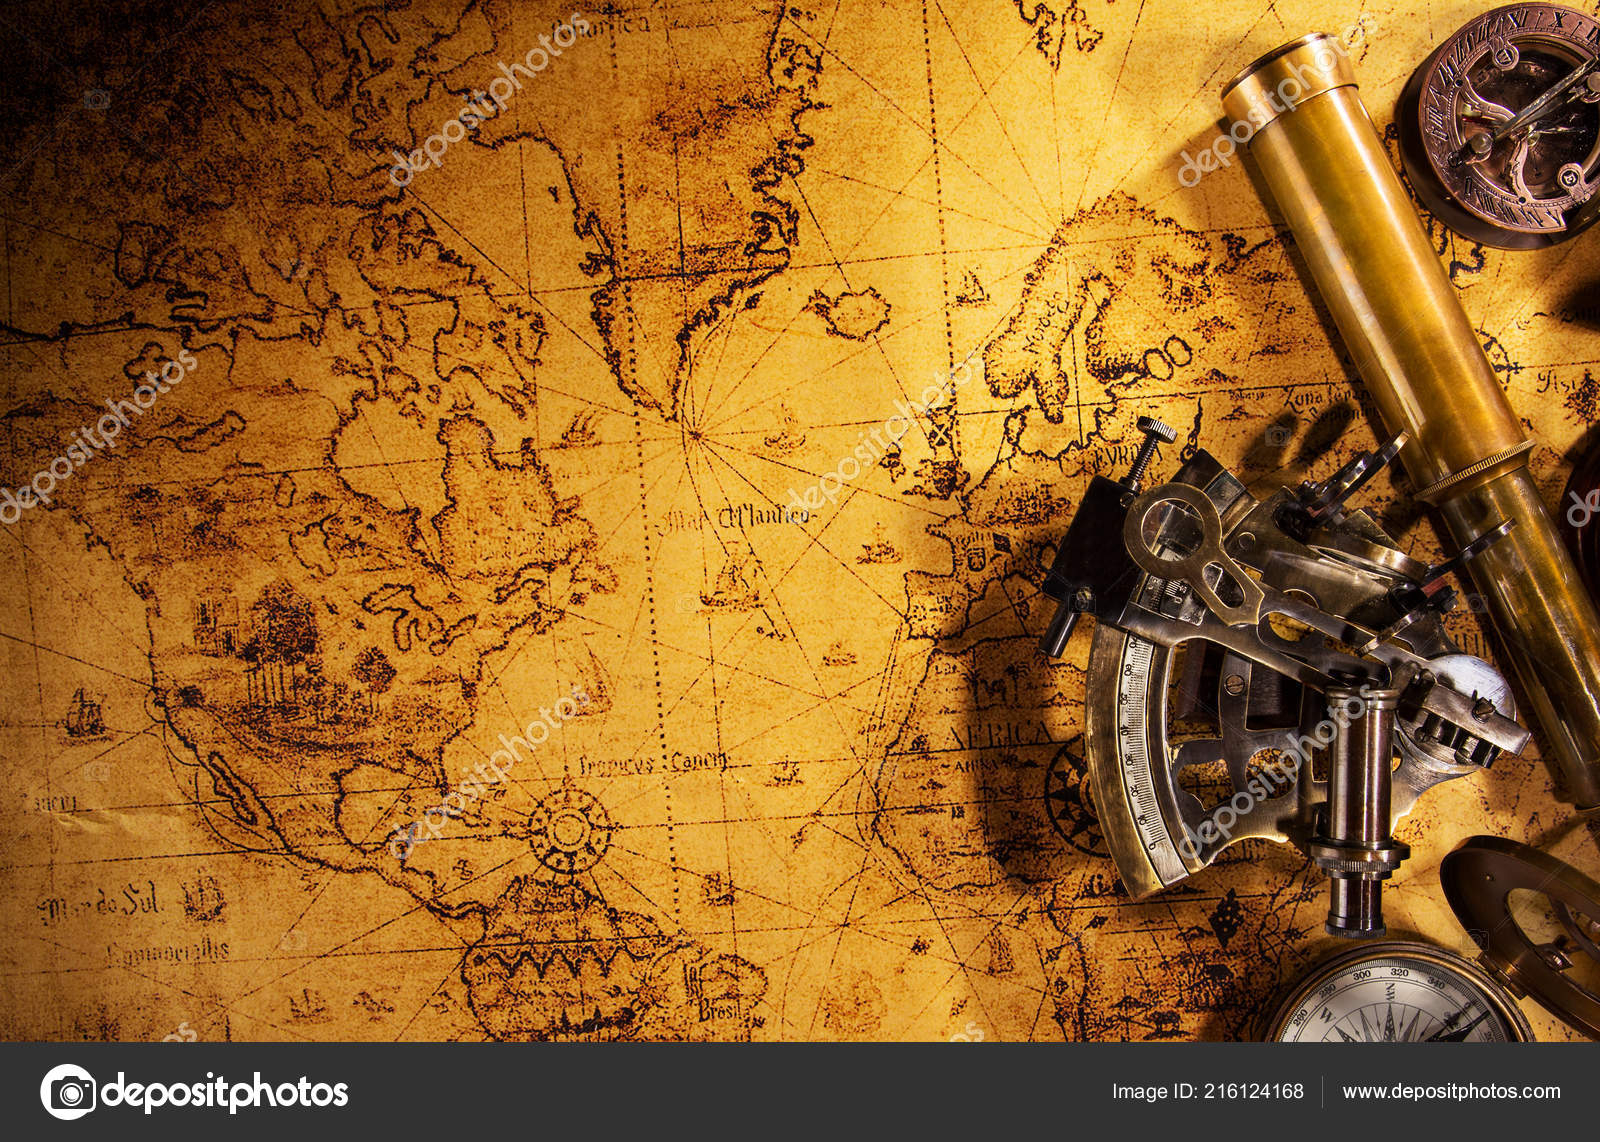 Navigation World Map.Top View Vintage Navigation Equipment Old World Map Stock Photo